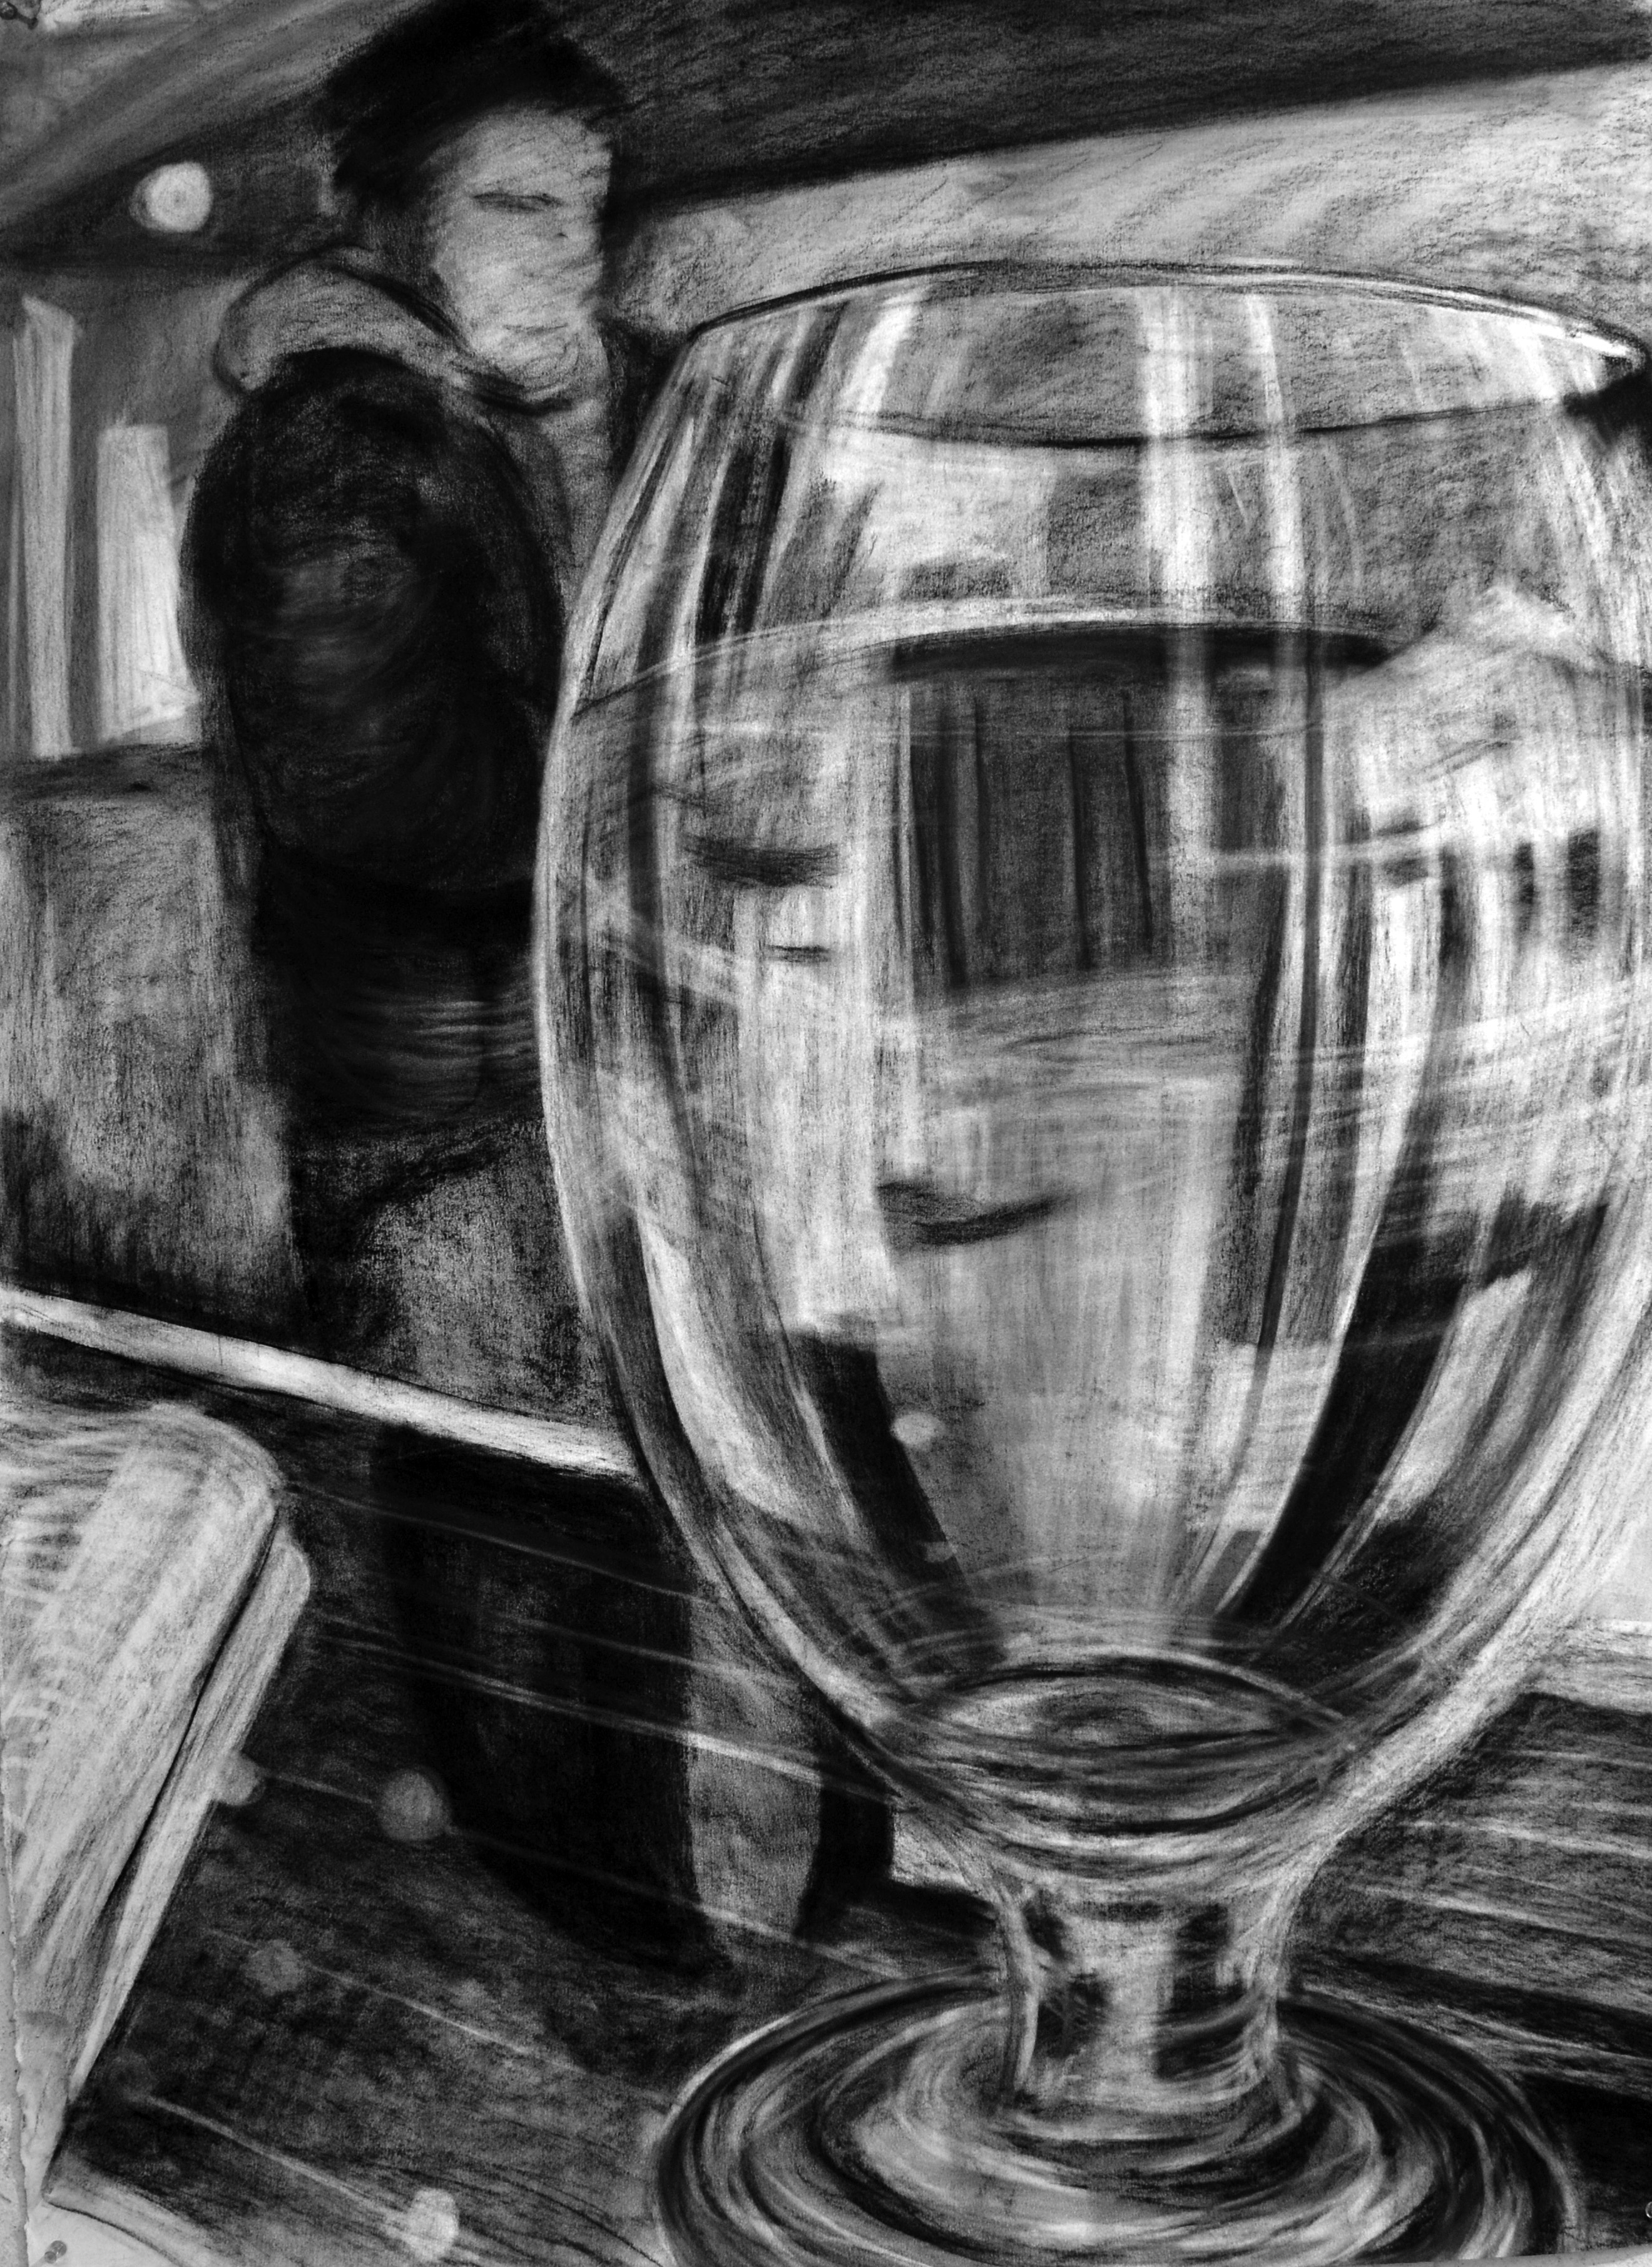 Drawn glass mirror reflection Observed but a based And